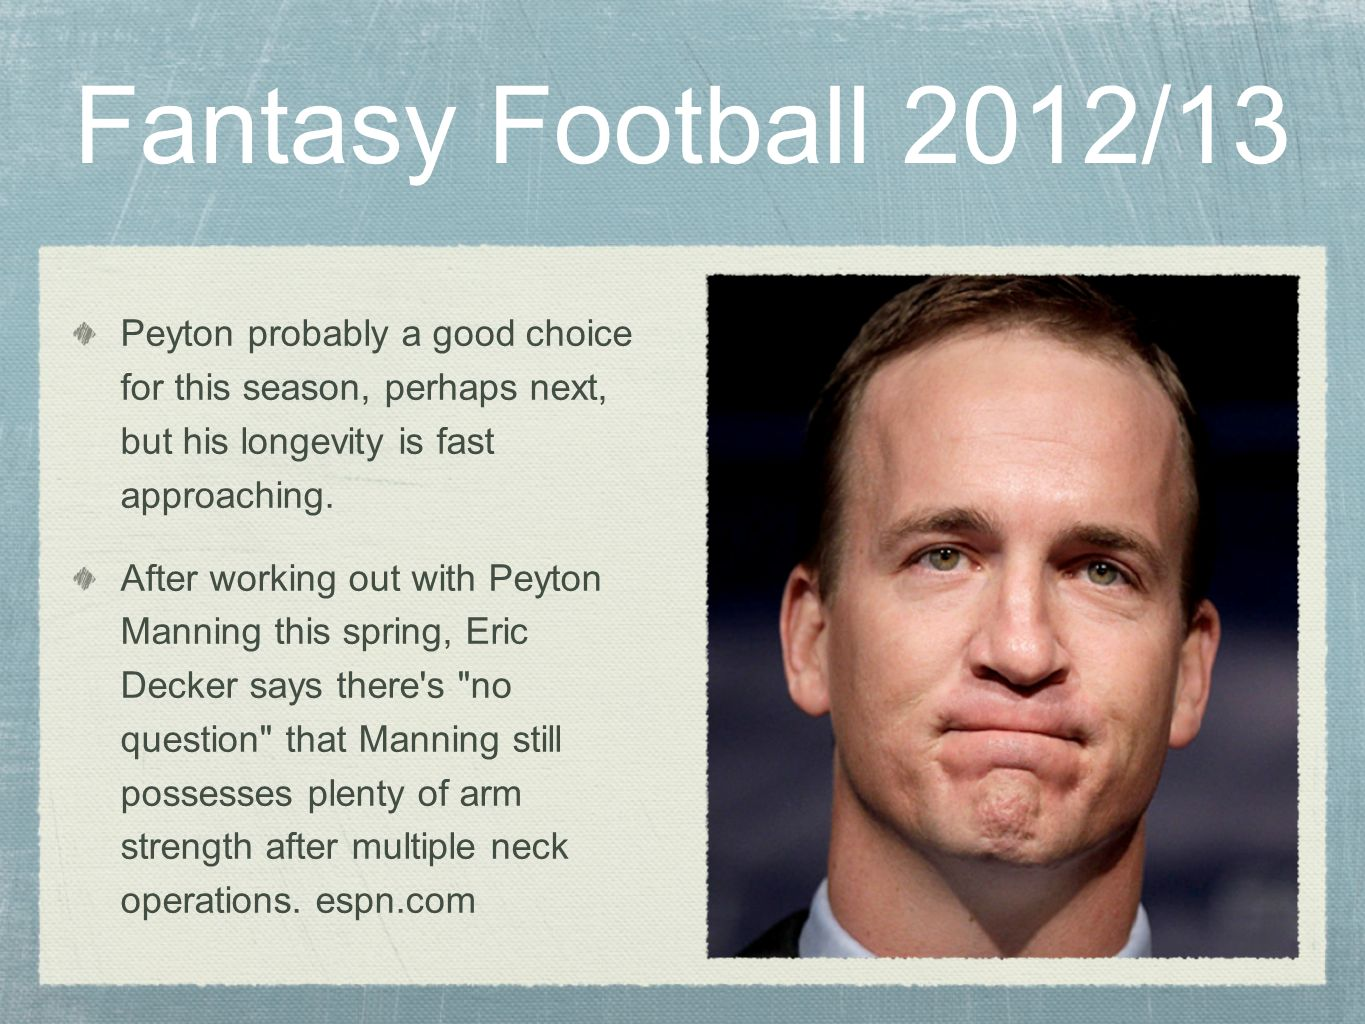 Fantasy Football 2012/13 Peyton probably a good choice for this season, perhaps next, but his longevity is fast approaching.